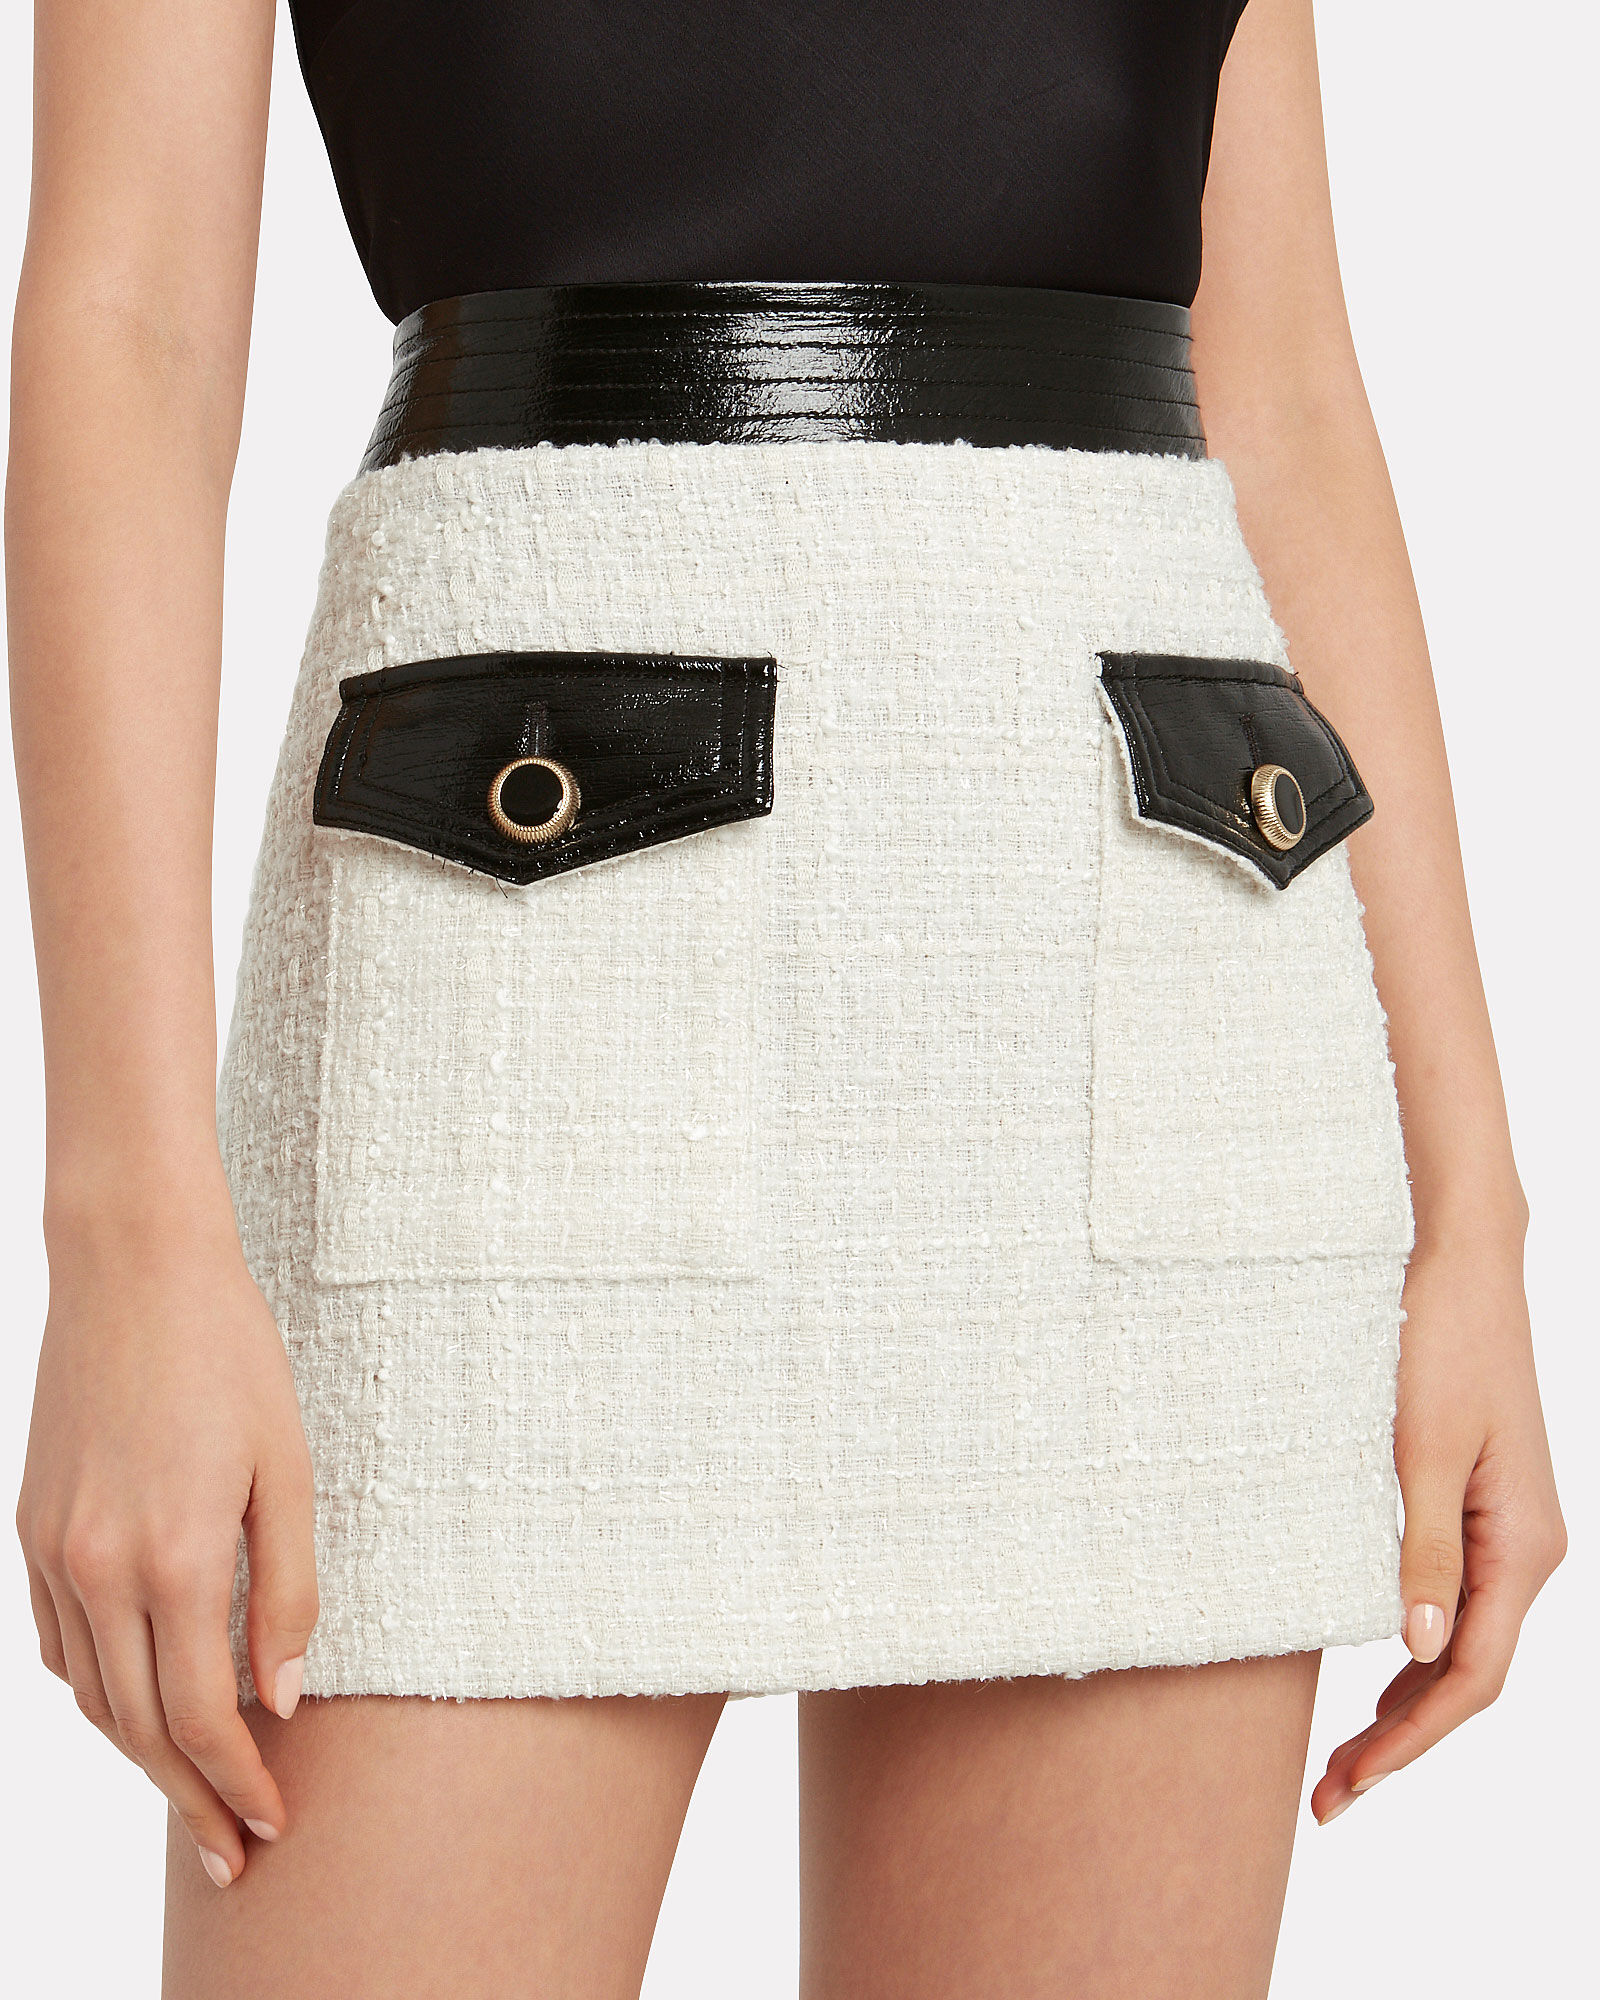 Lucy Vegan Leather-Trimmed Tweed Skirt, IVORY, hi-res